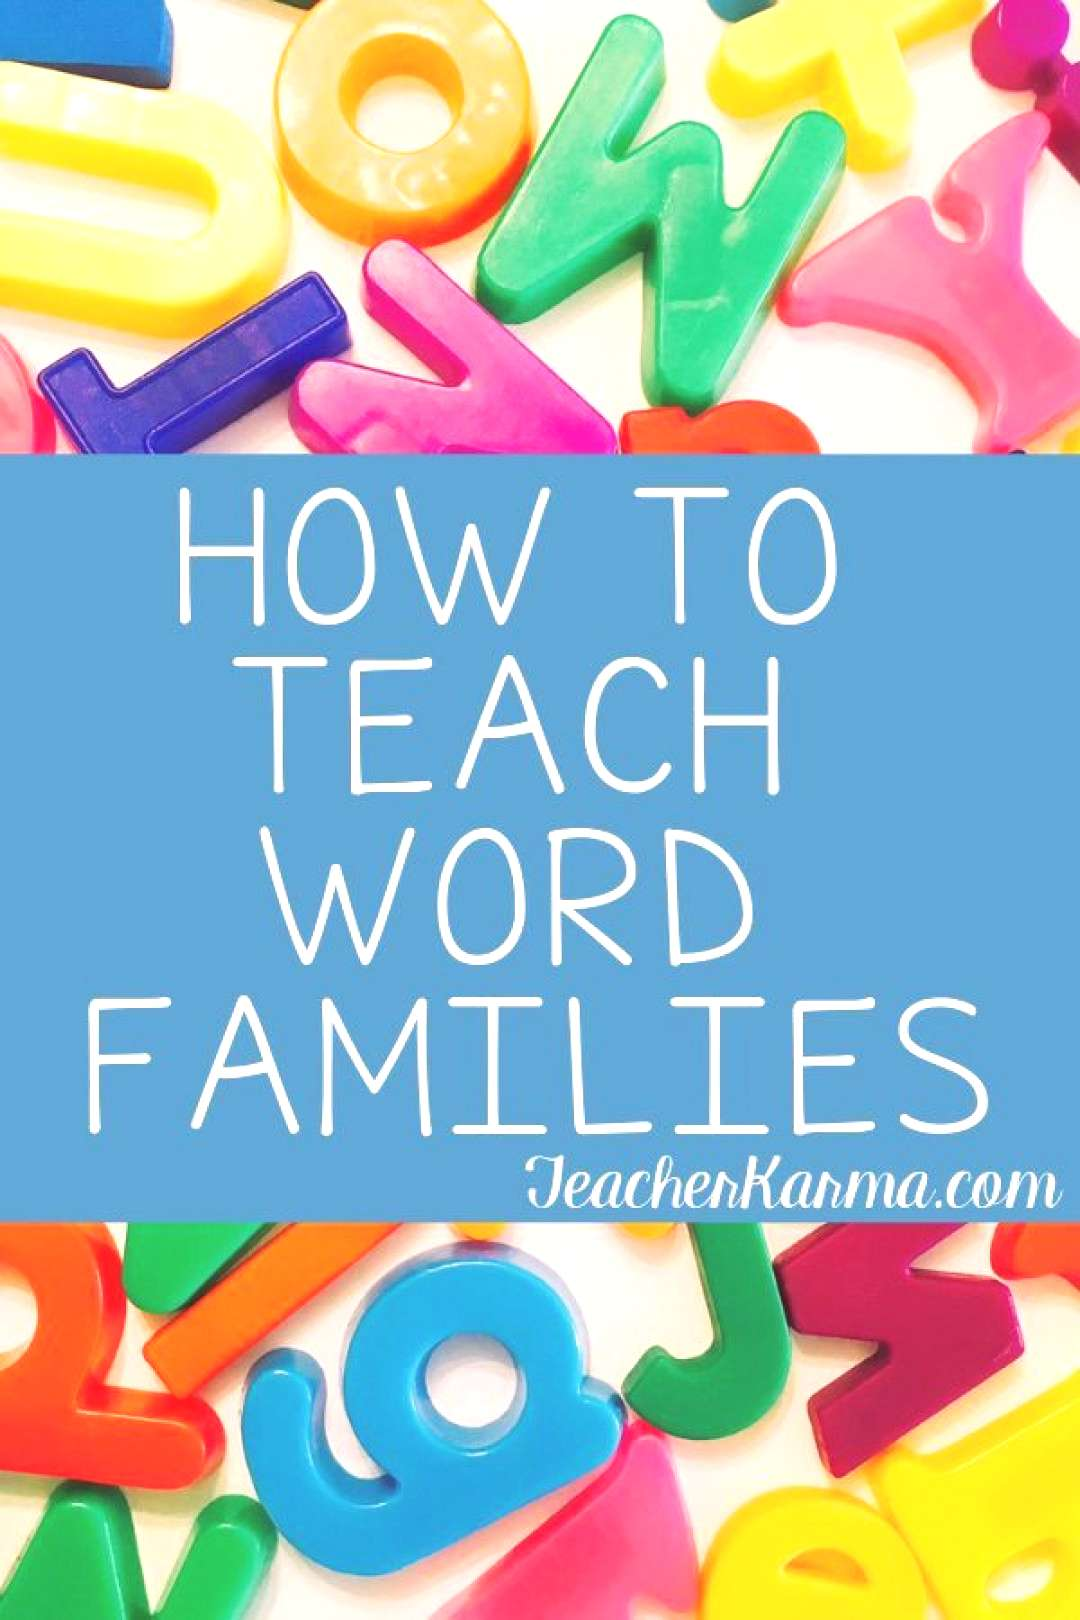 How to Teach Word Families FREE Guide How to teach word families in 4 easy cheesy steps. Click o